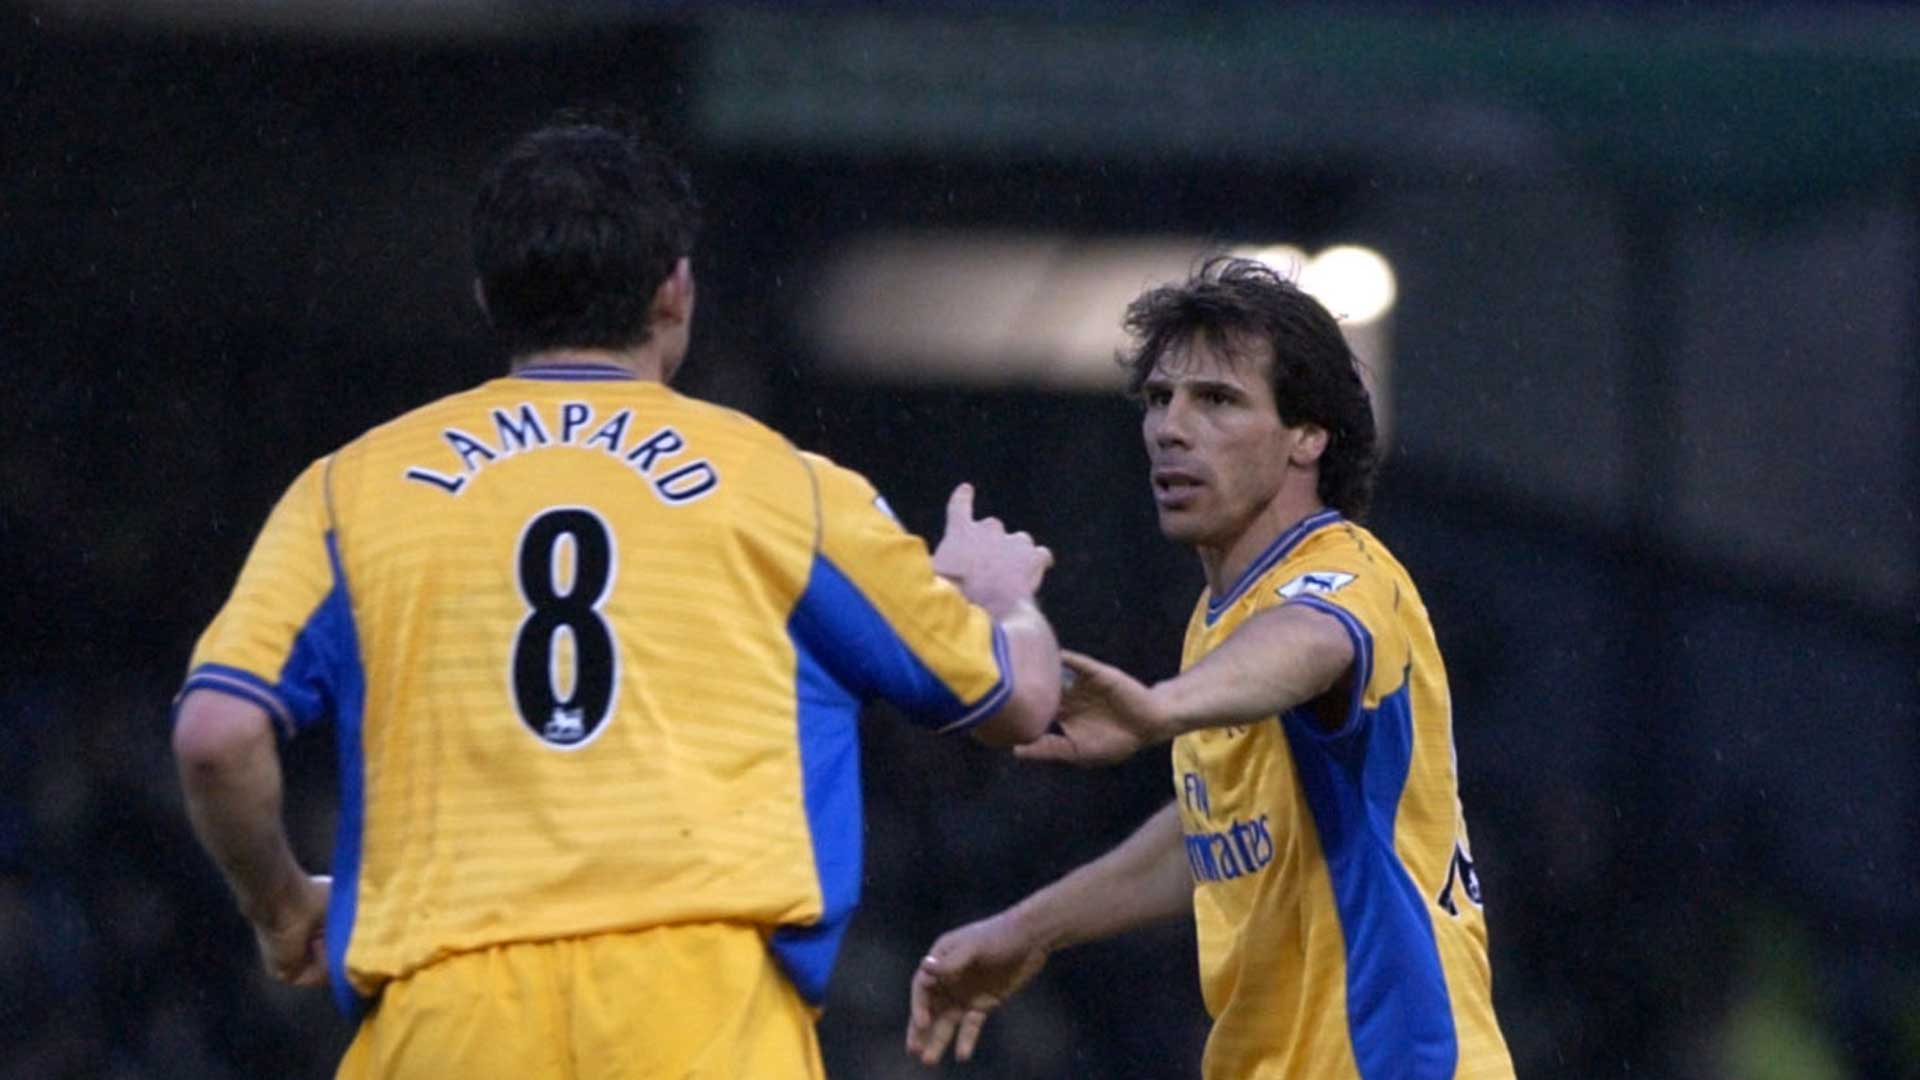 Gianfranco Zola and Frank Lampard